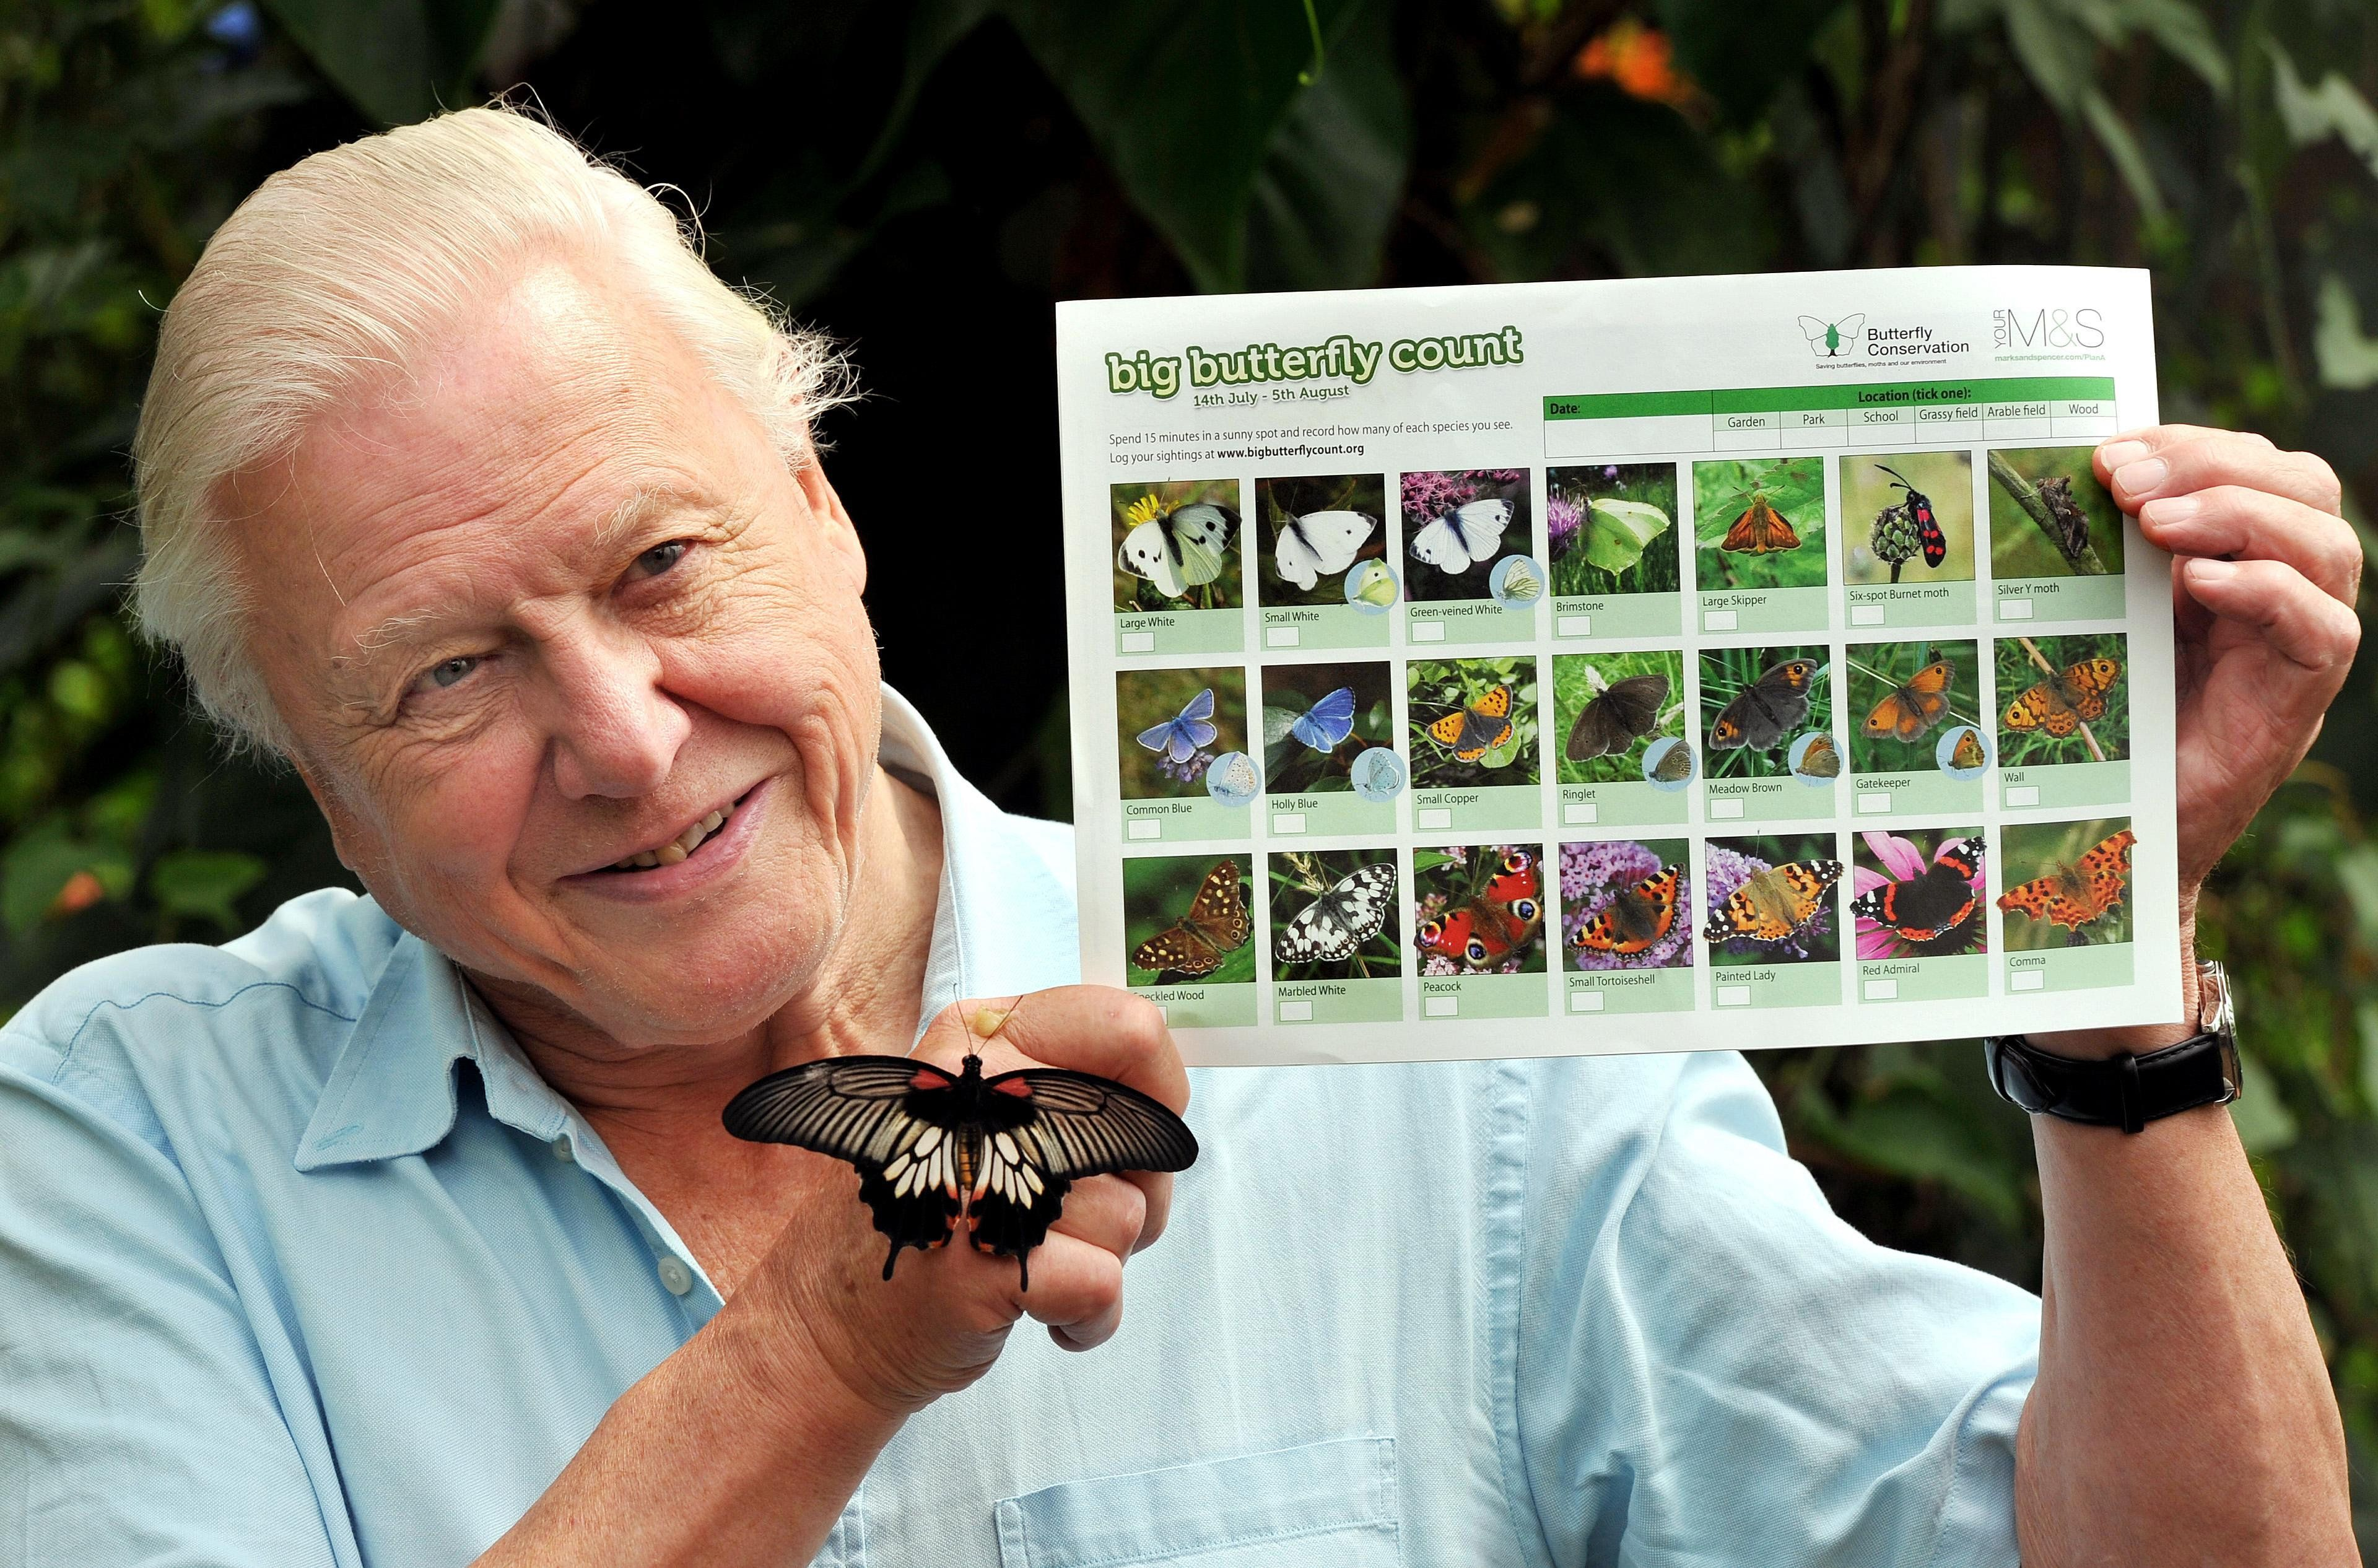 David Attenborough backs world's biggest butterfly count